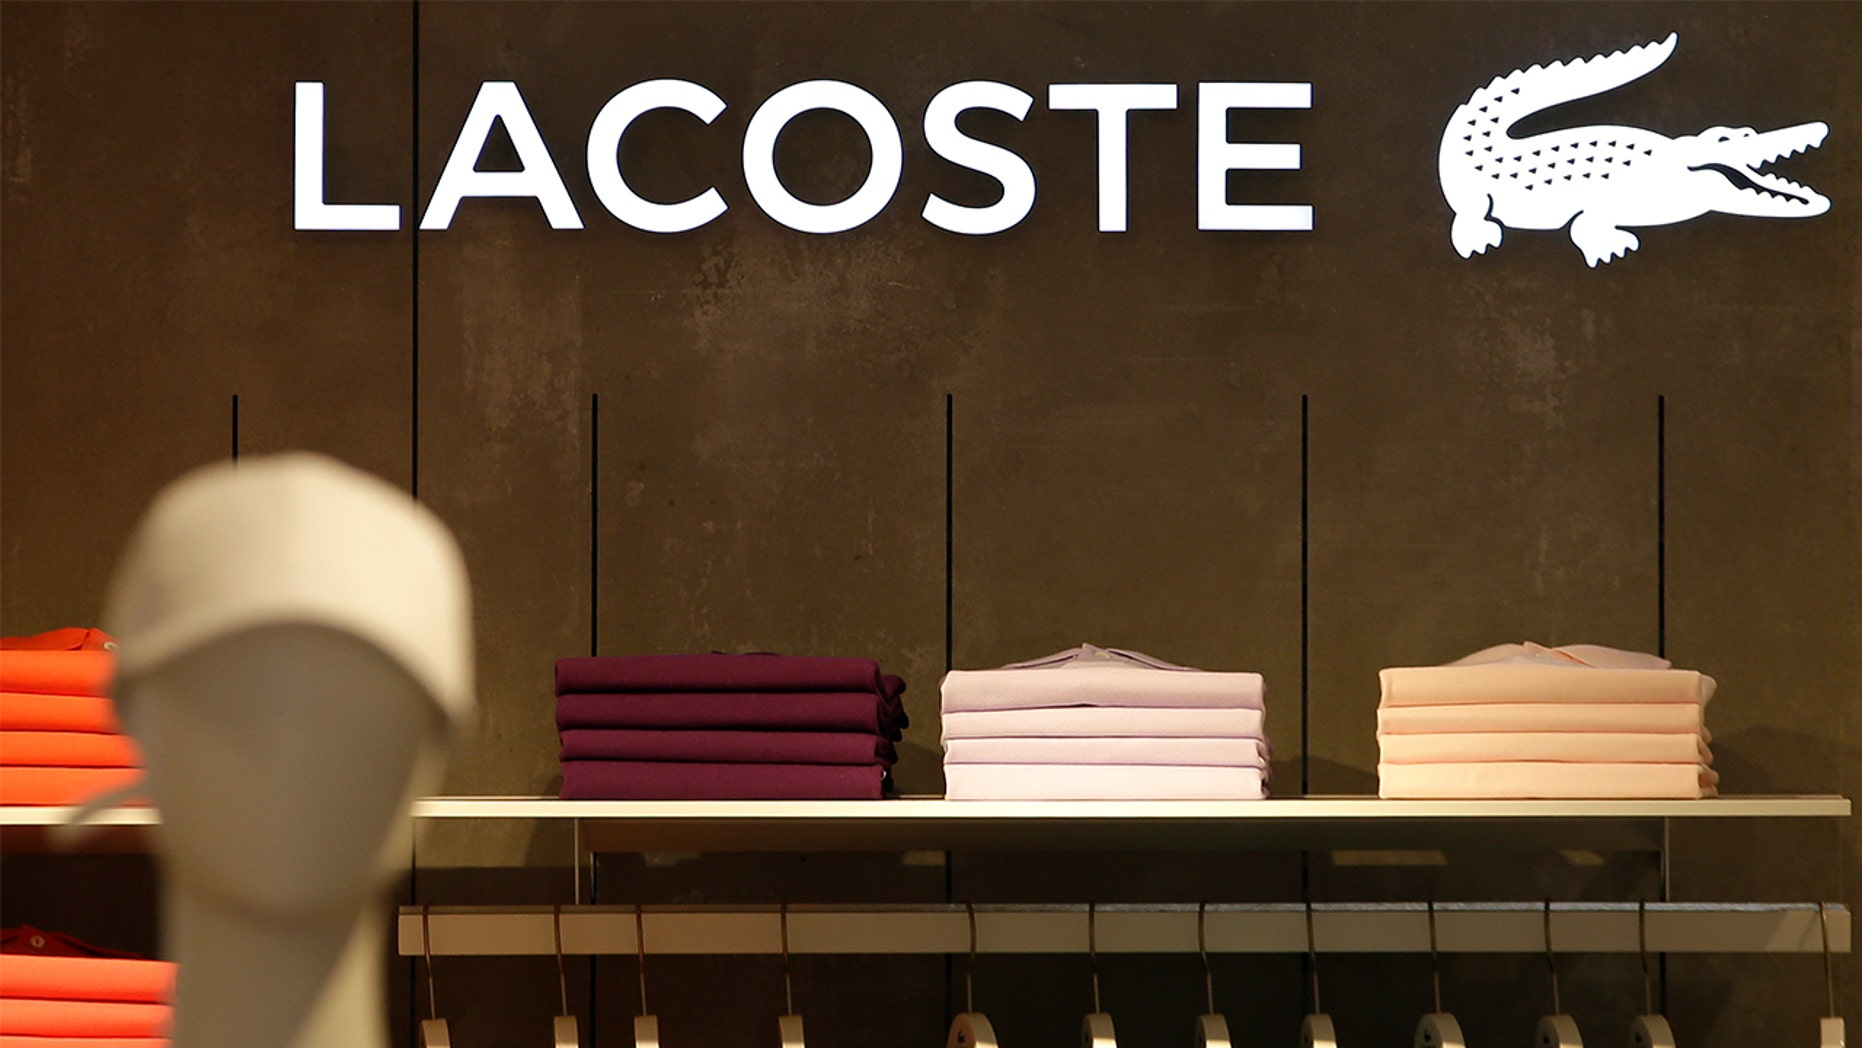 Clothing brand Lacoste is swapping out its iconic crocodile logo with 10 endangered species to raise awareness and help conservation efforts.